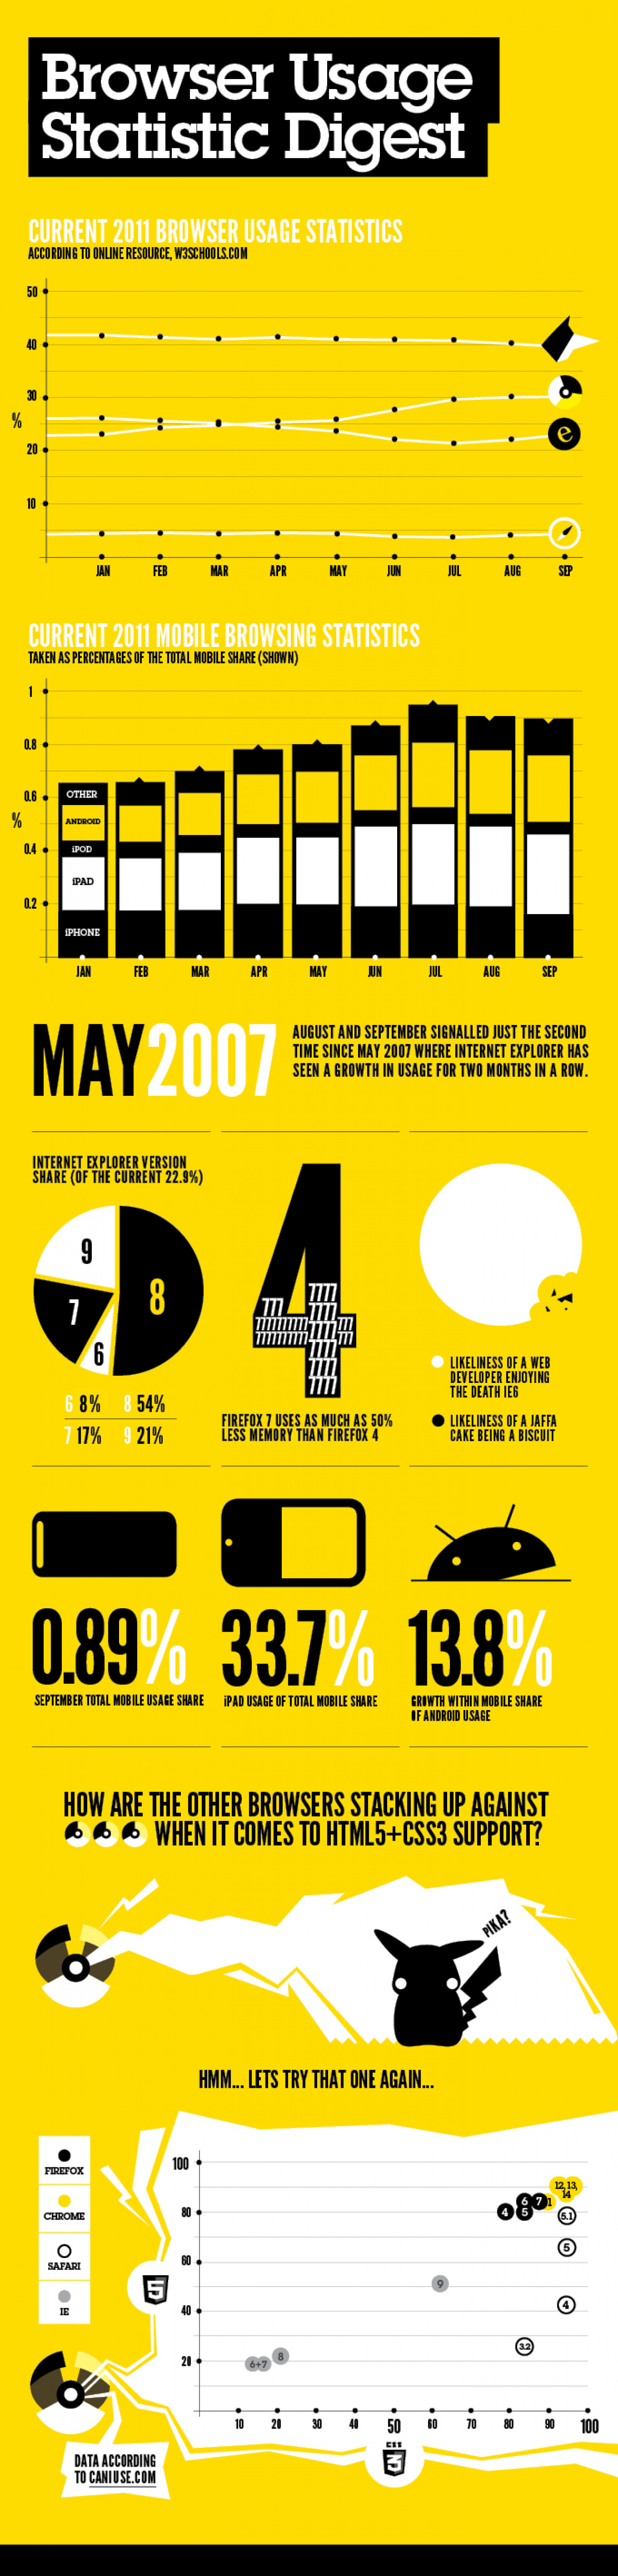 Browser Usage Statistic Digest  Infographic